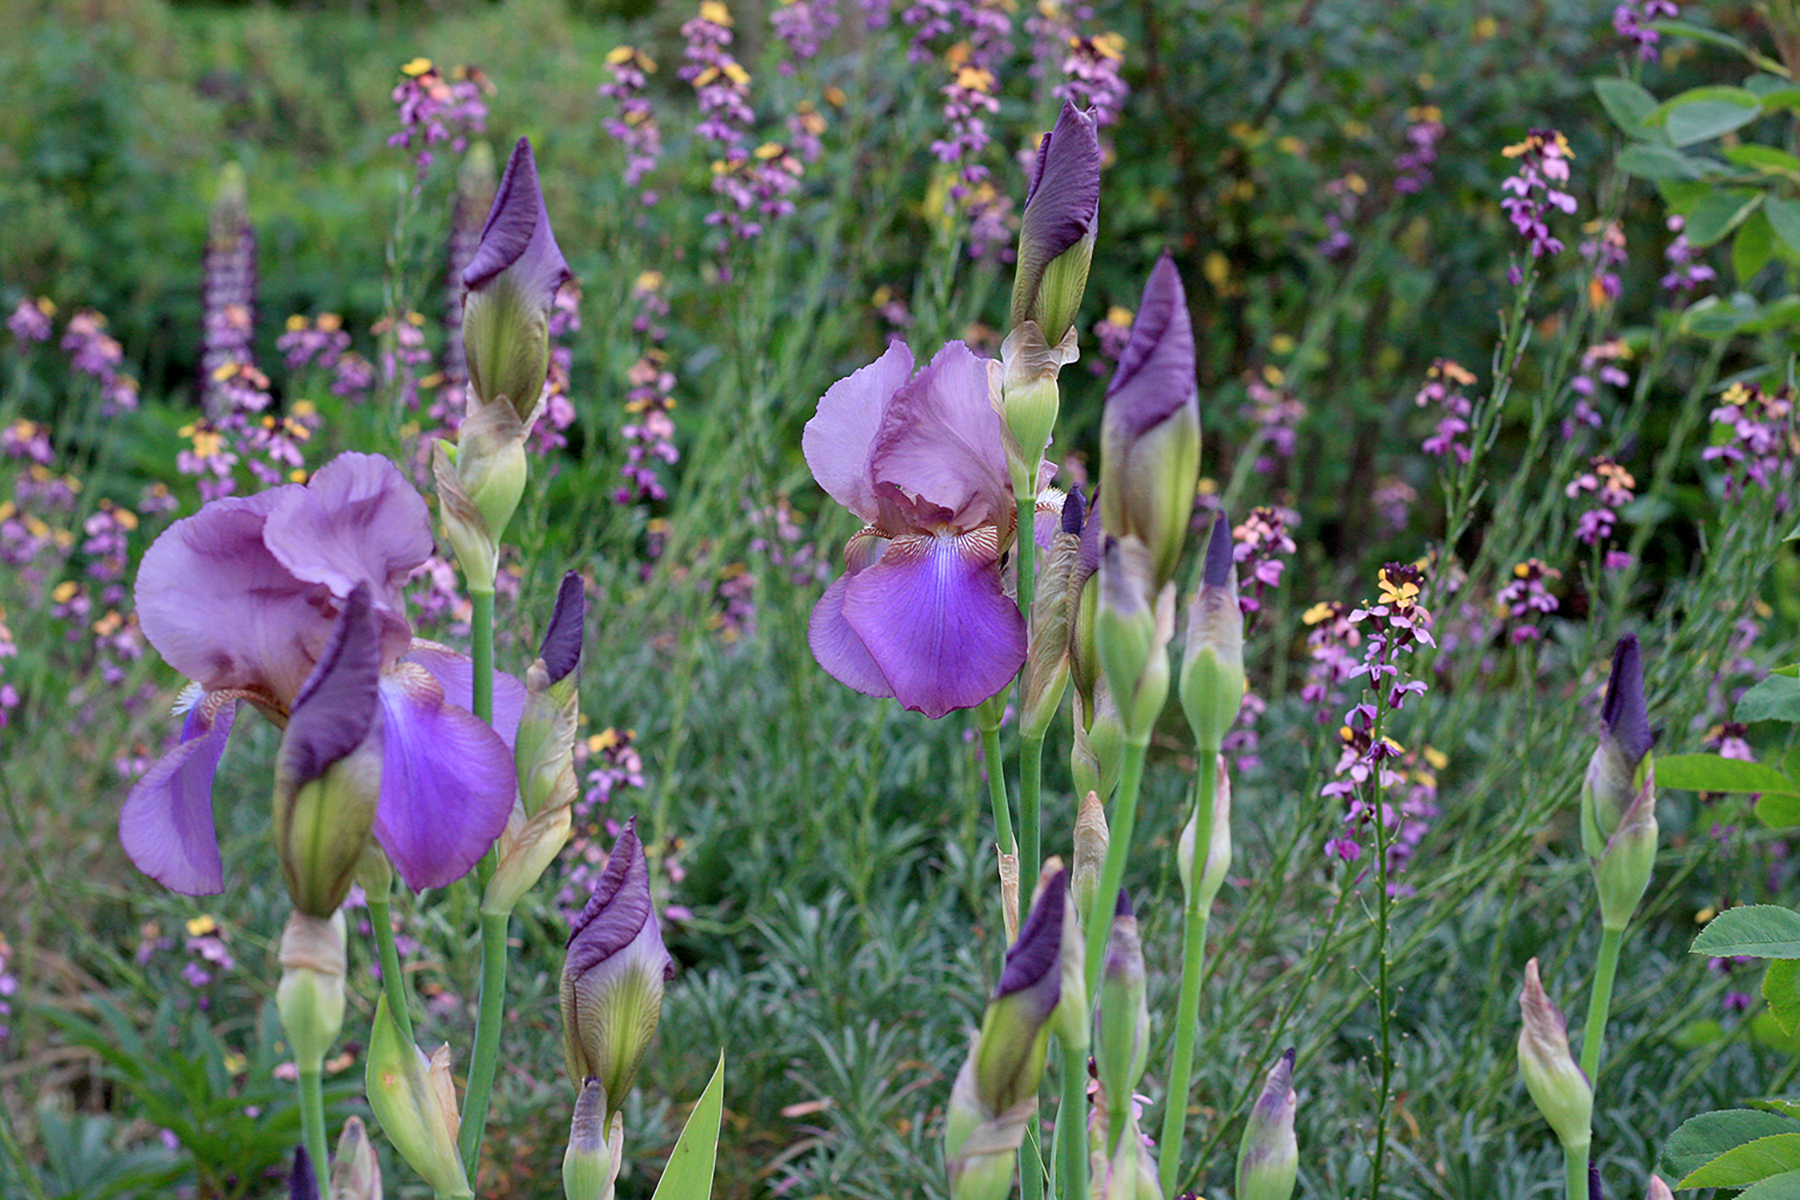 Iris  'Beottie' with  Erysimum  'Chelsea Jacket'